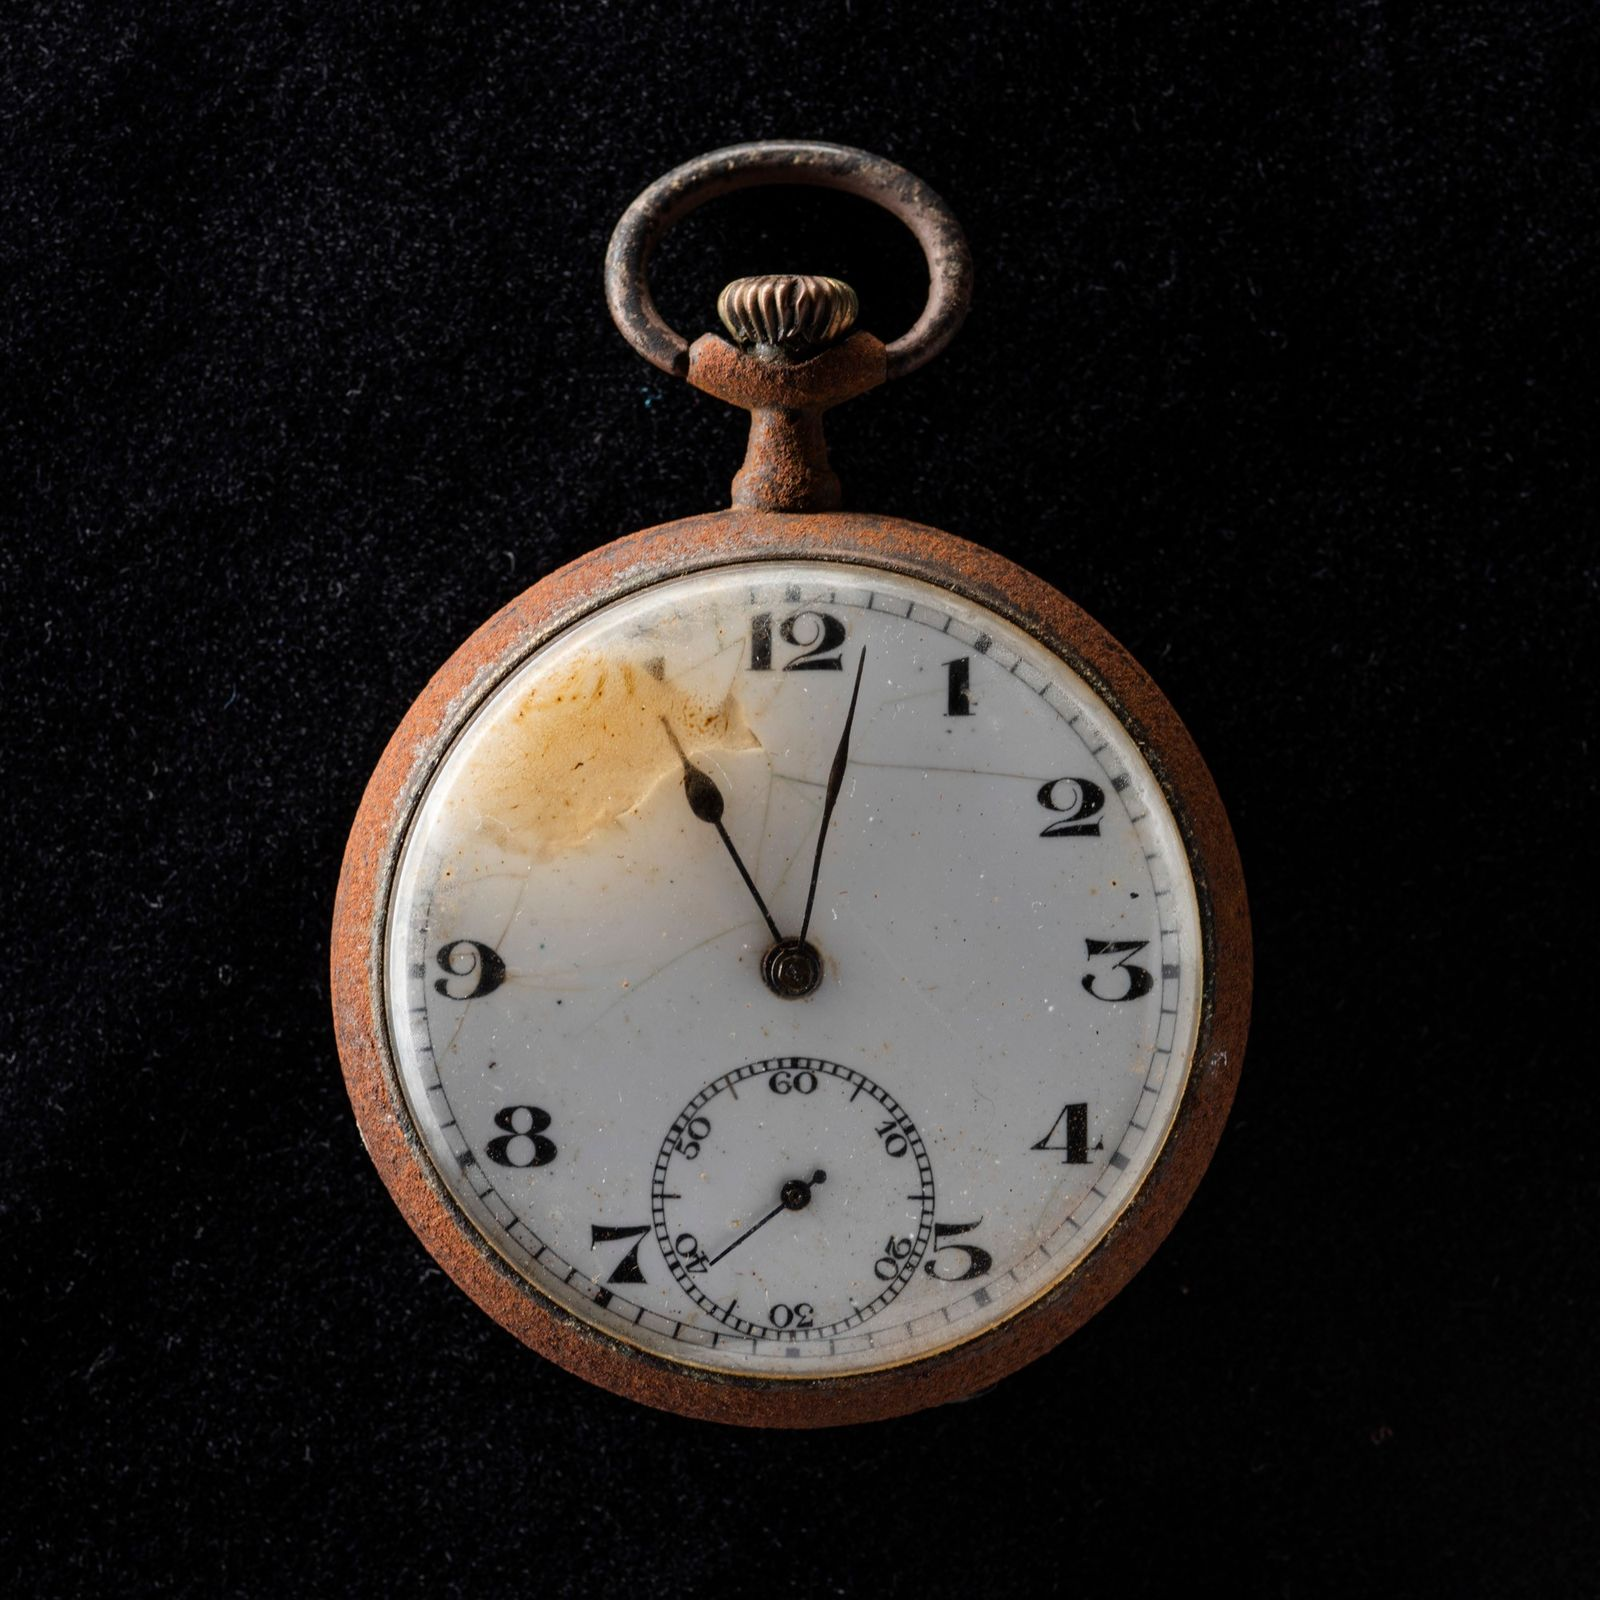 The hands on this pocket watch recovered from Nagasaki are frozen at 11:02 A.M.—the moment the ...